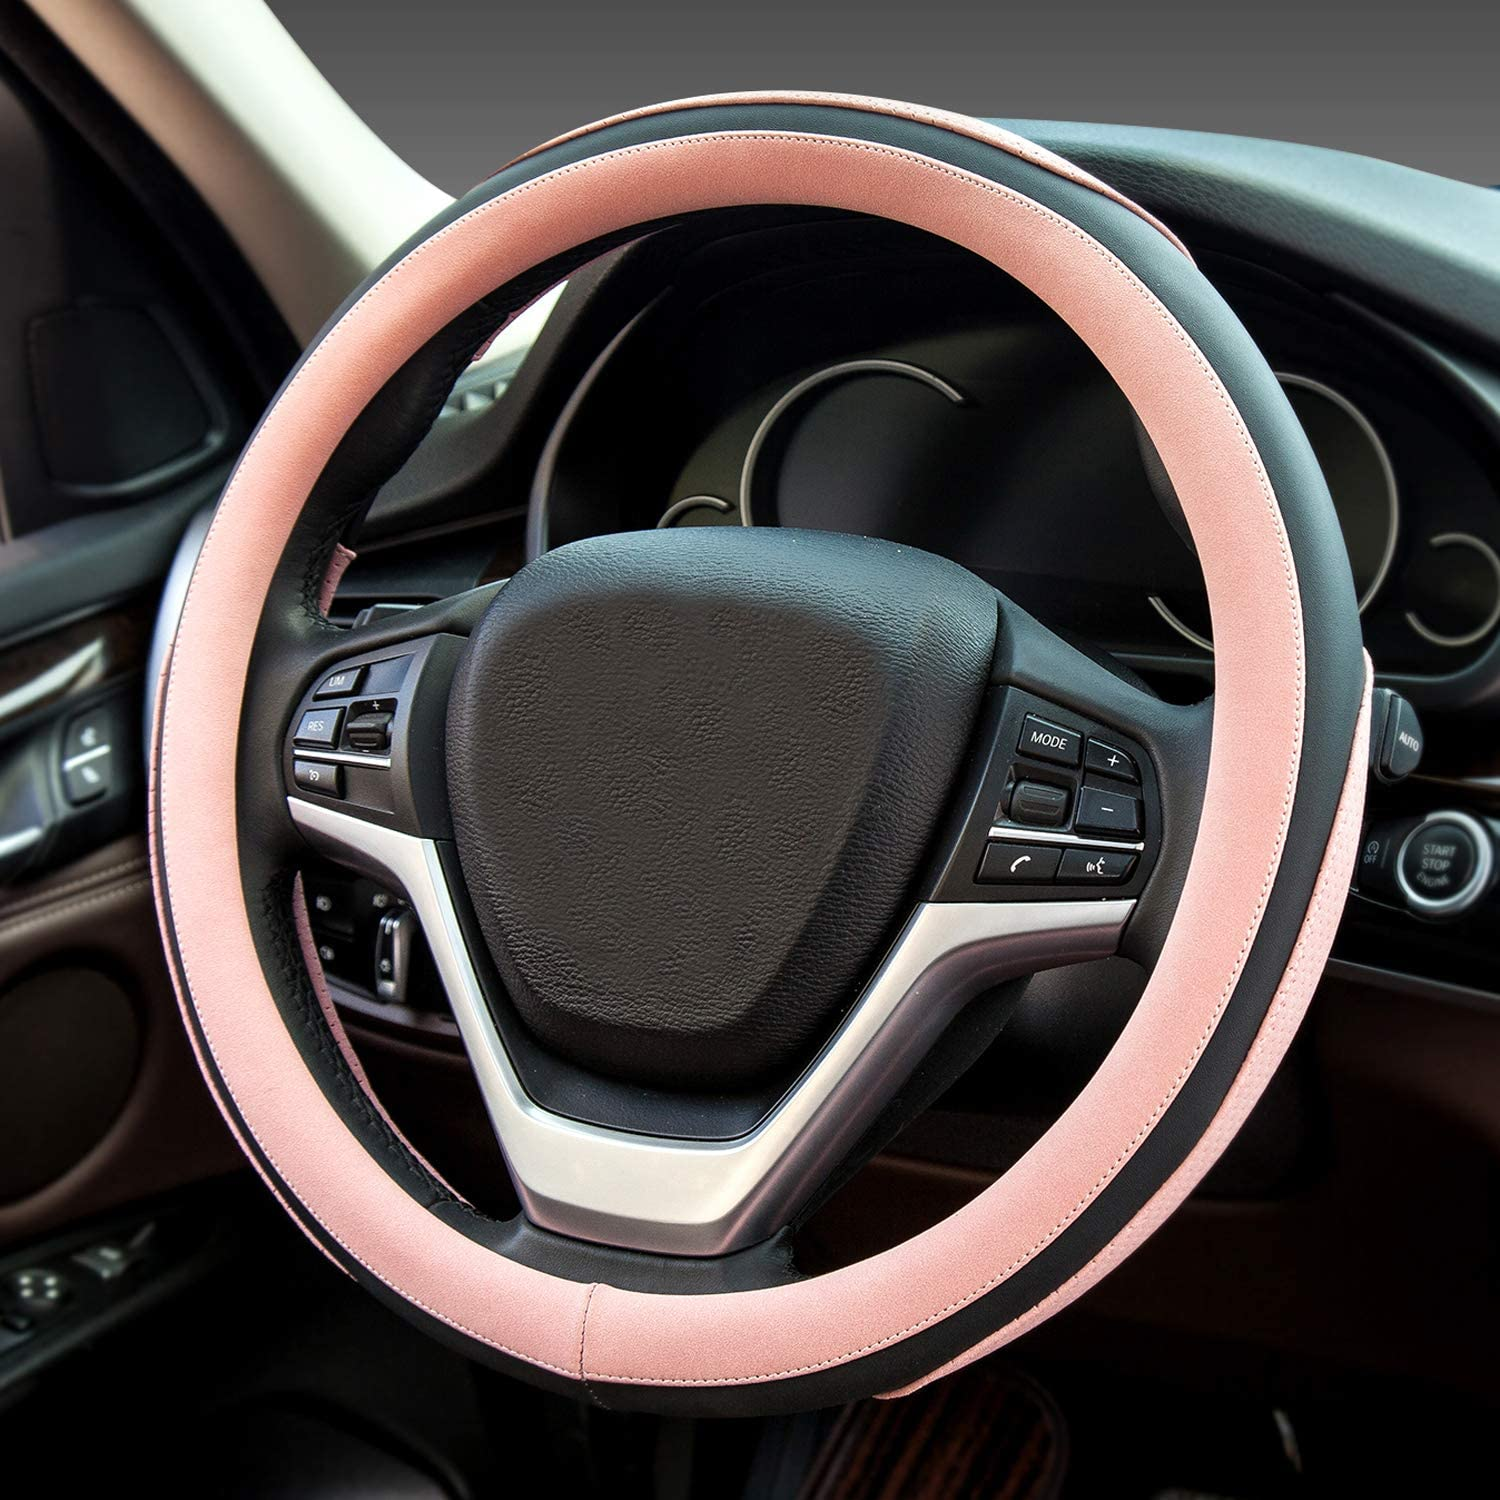 Didida Steering Wheel Covers Soft Matte Microfiber Leather Non-Slip Sweat-Absorbent for Women Men Universal 15 Inch Car Decoration (Pink)